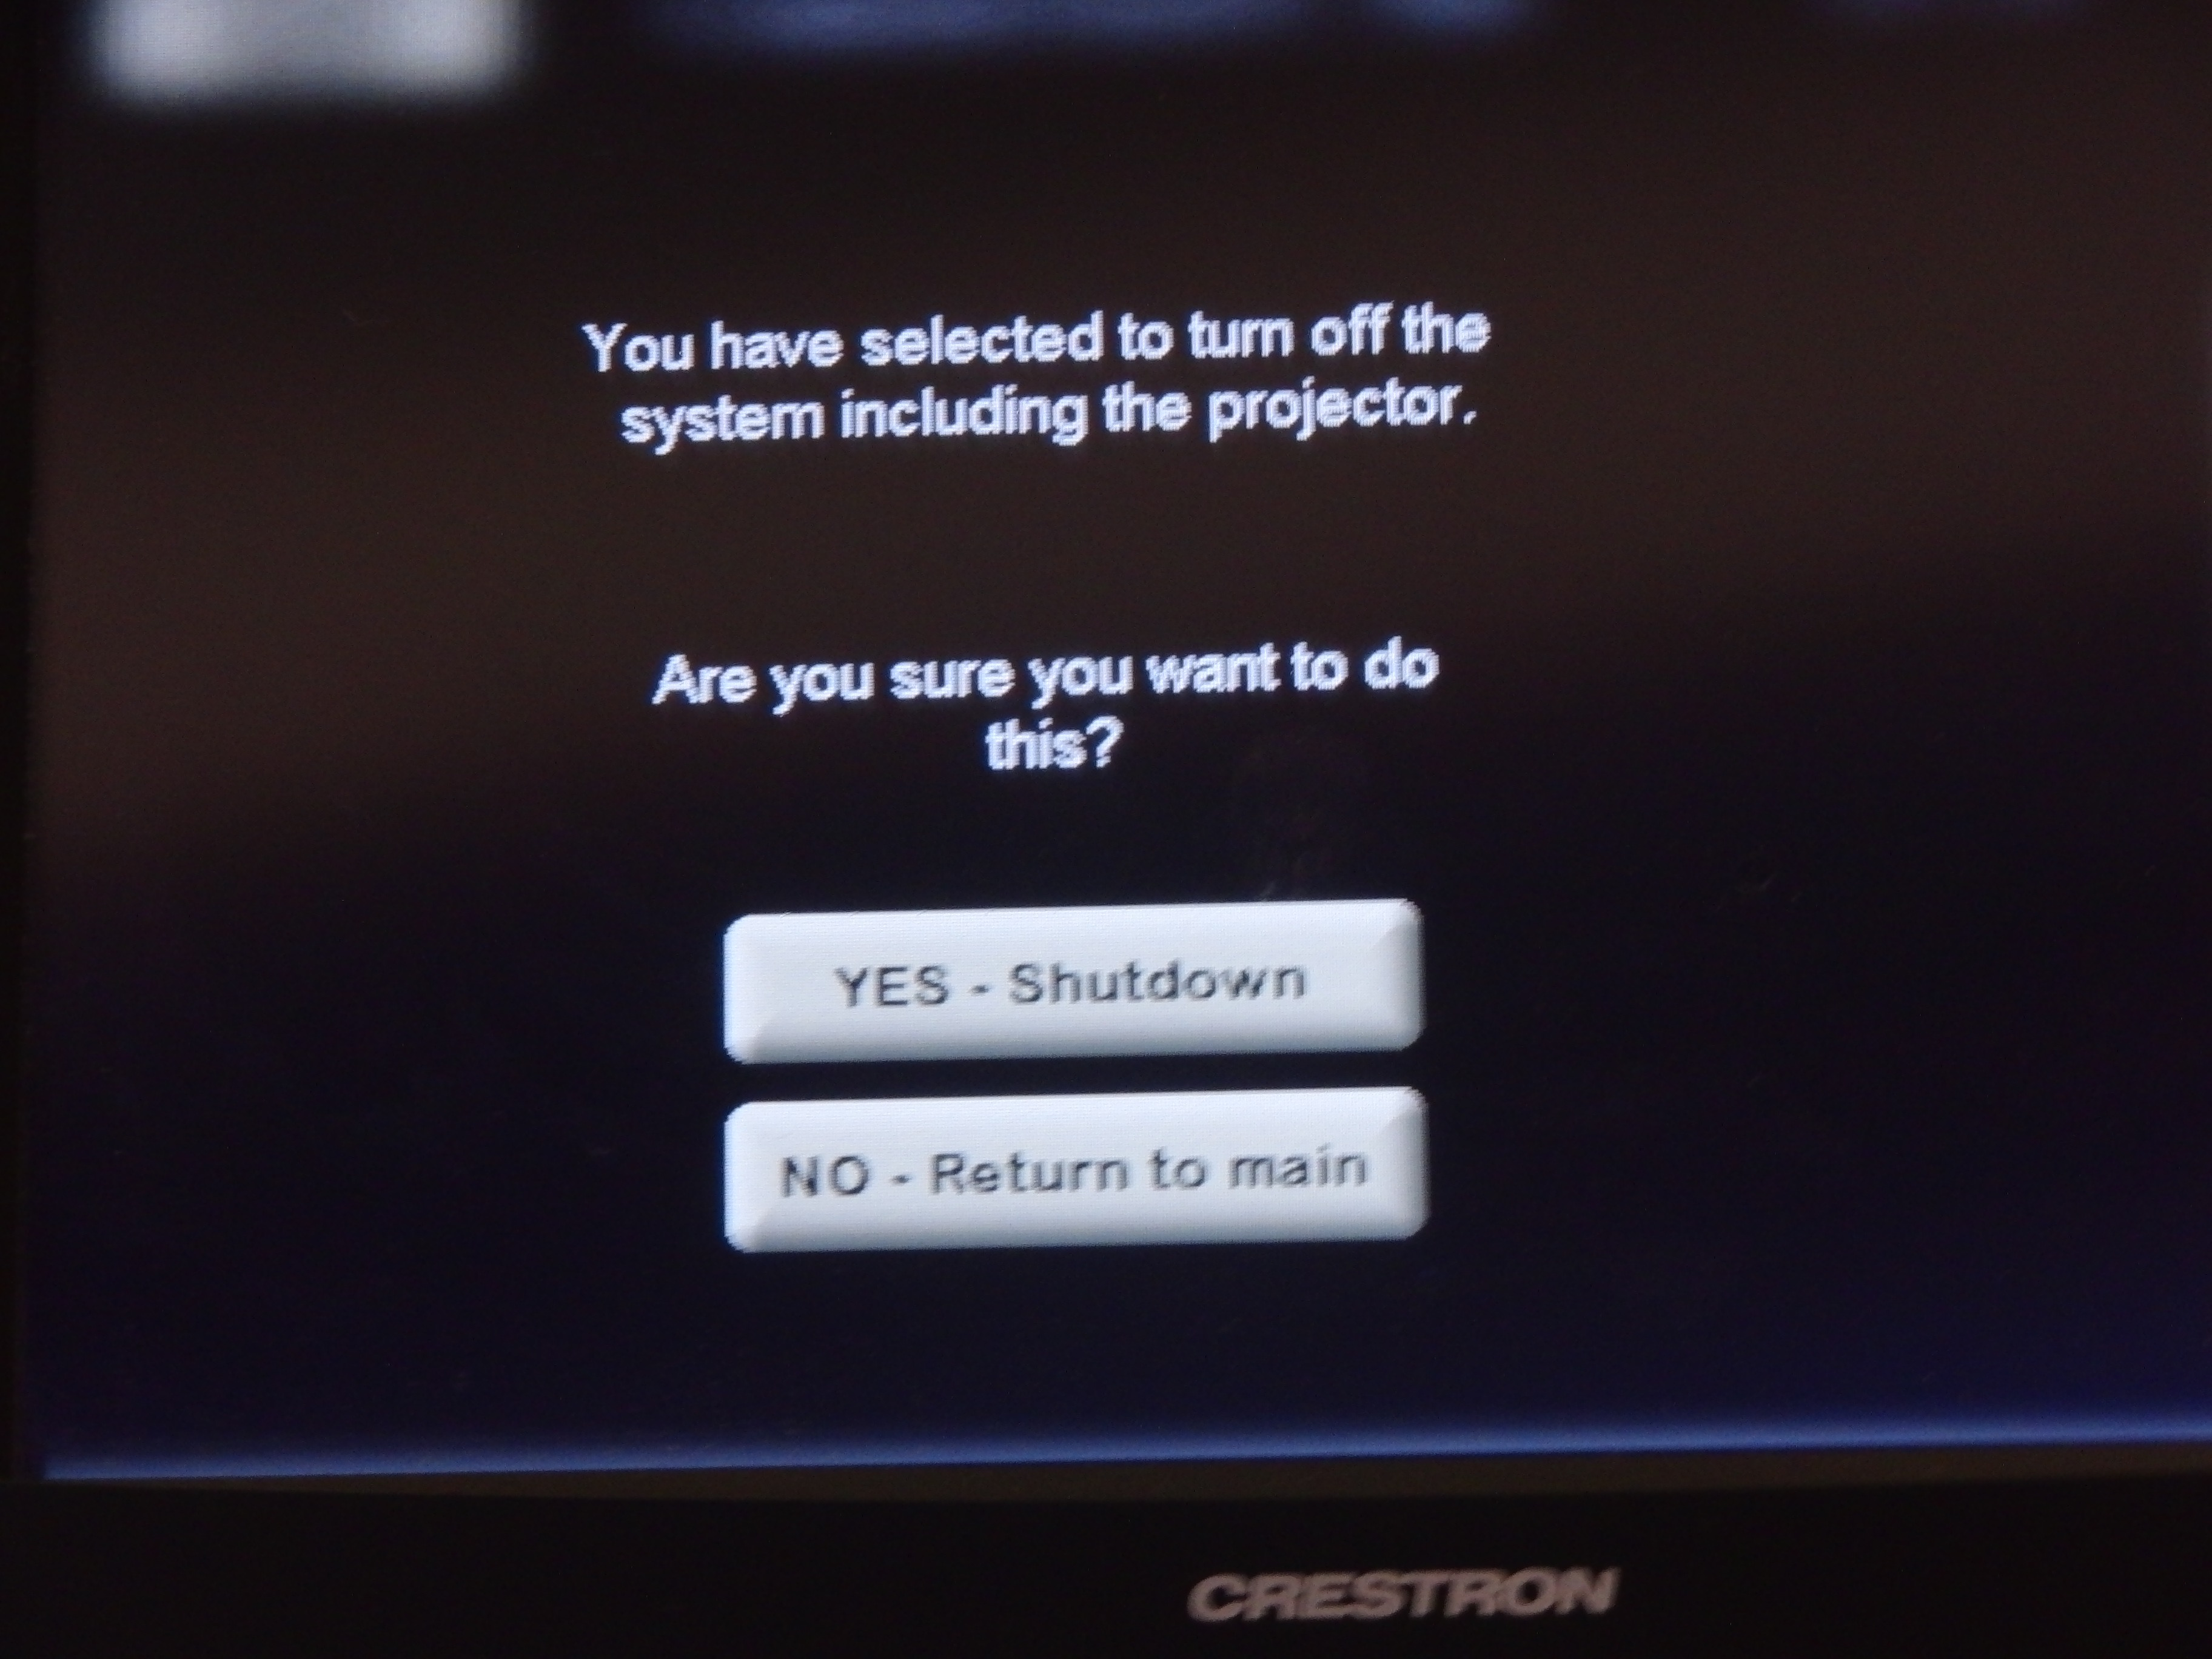 Photo of crestron control touch panel displaying the option to shut down the system